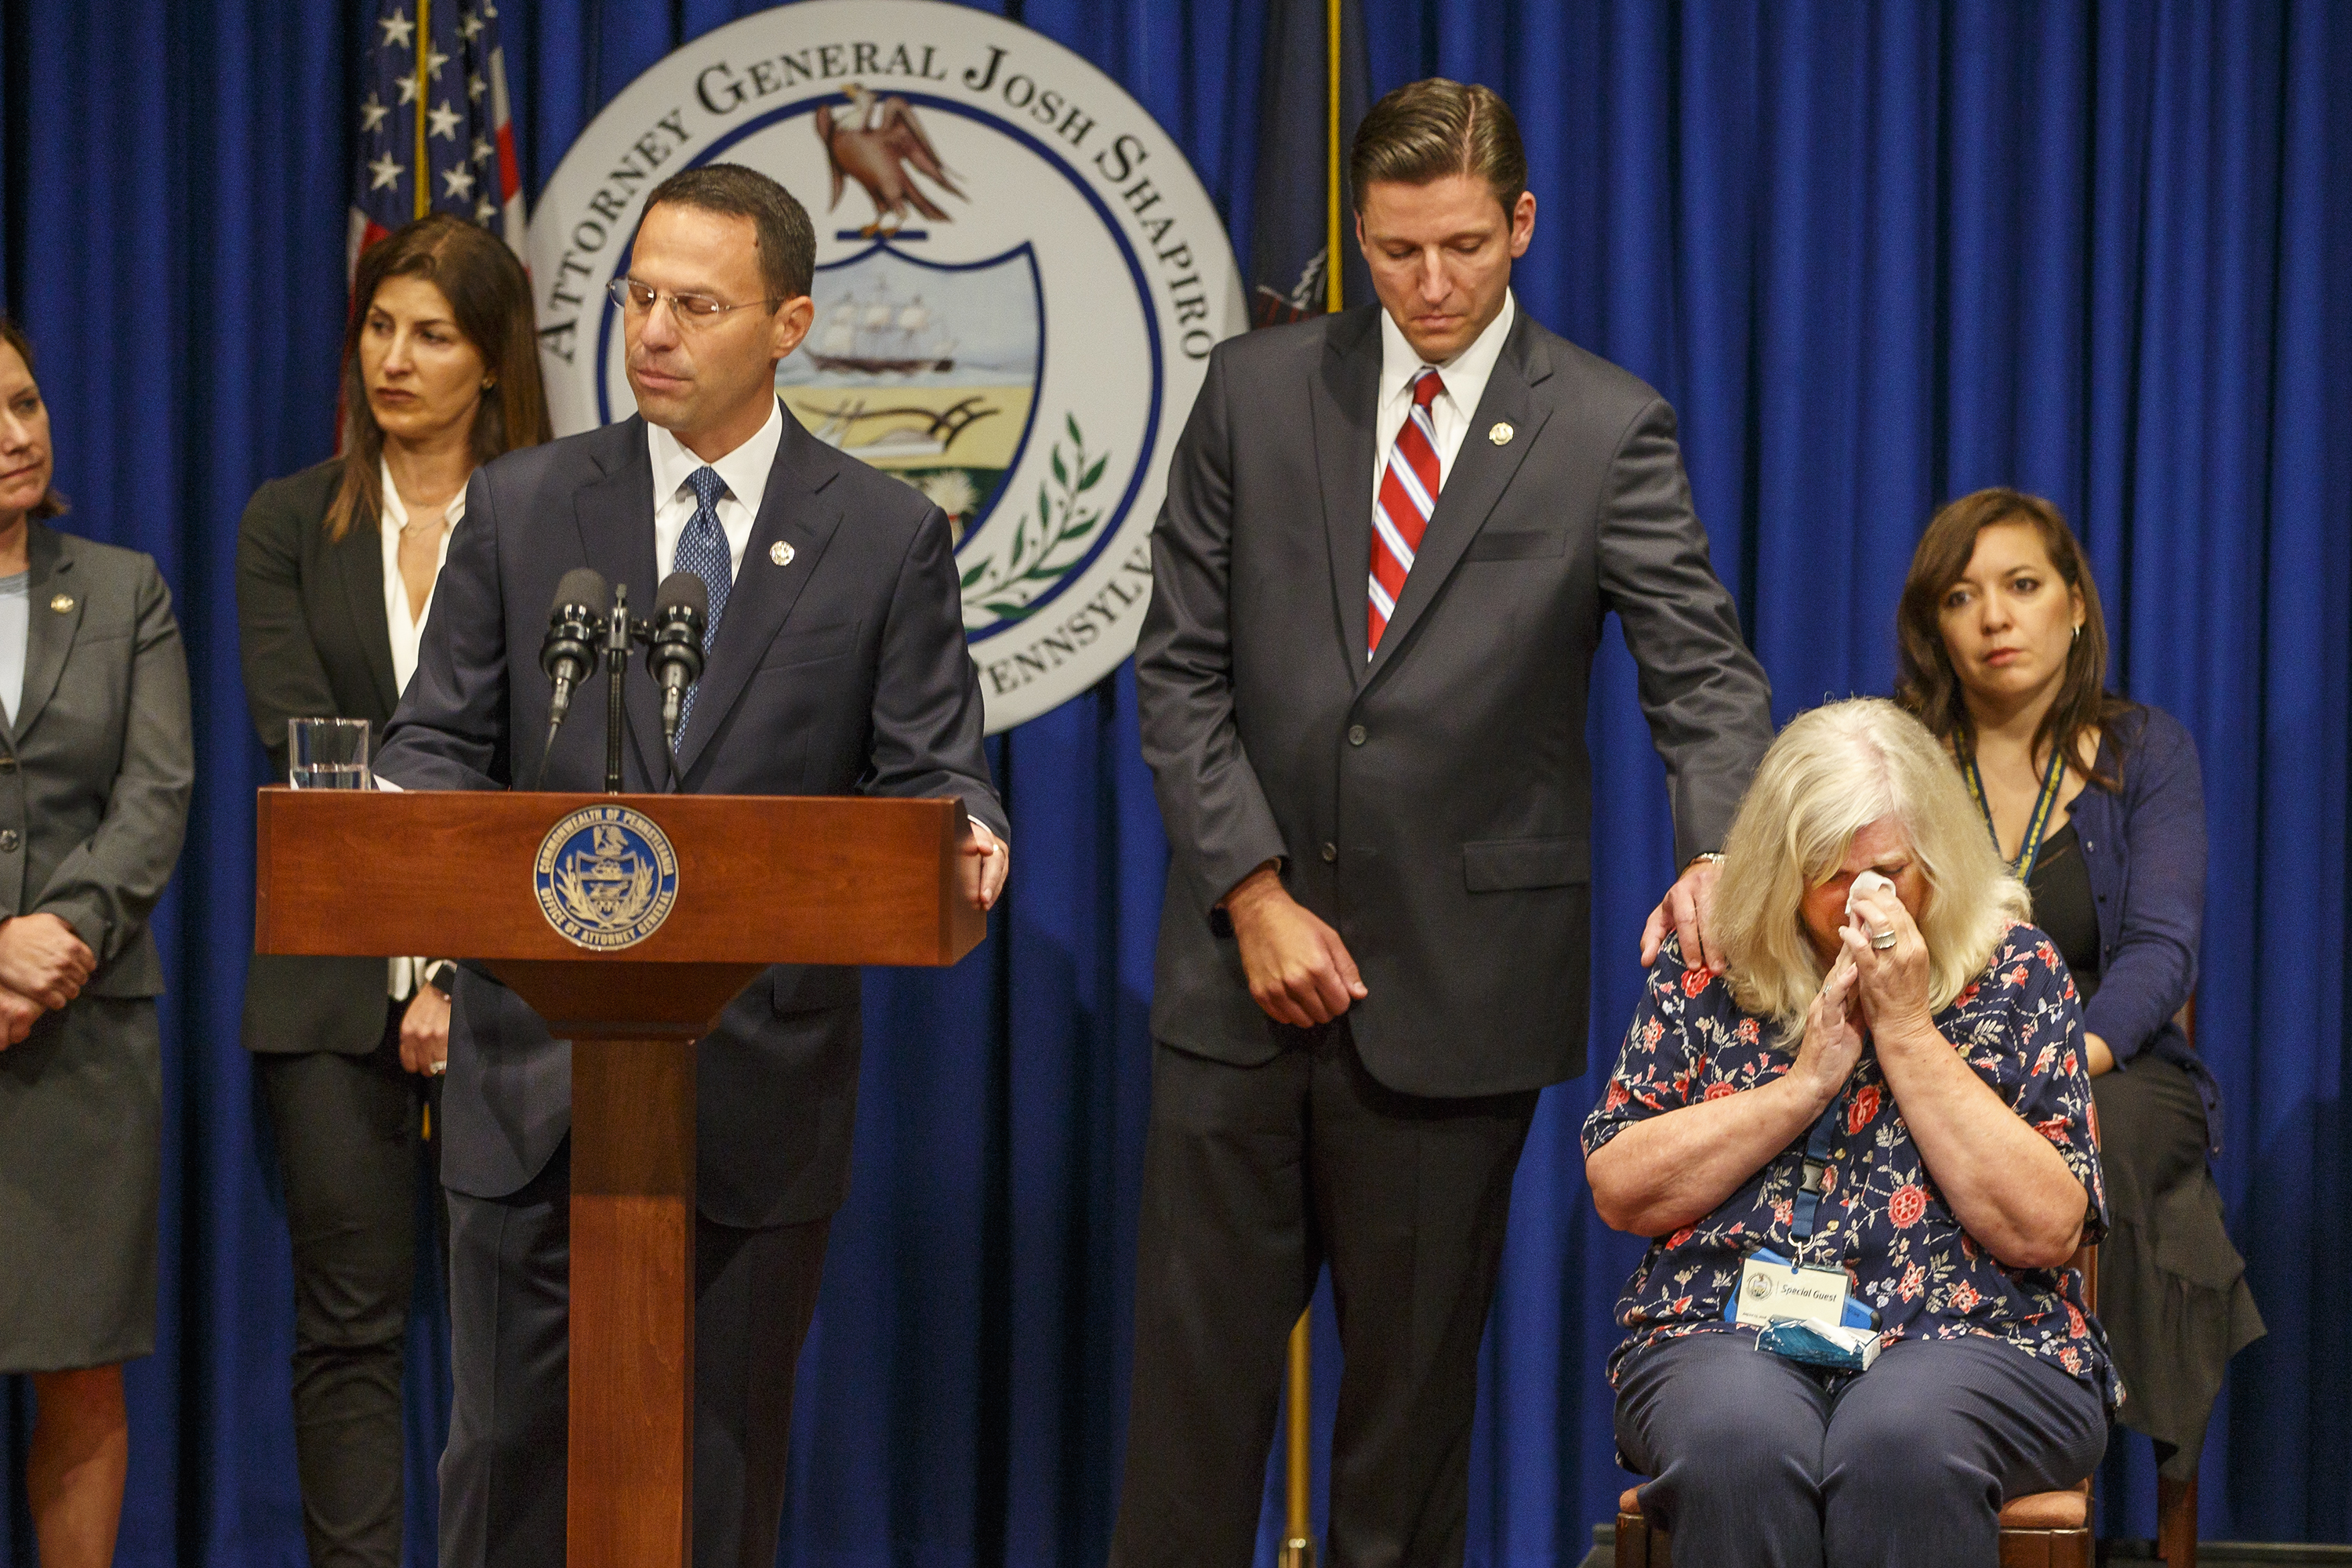 Daniel J. Dye, center, Senior Deputy Attorney General, center, reaches over and comforts Judy Deavena, right, mother of Joey Behe, a victim of sexual abuse from a Catholic priest, as Pennsylvania attorney general Josh Shapiro unveils a grand jury report into abuse at six dioceses across the state.